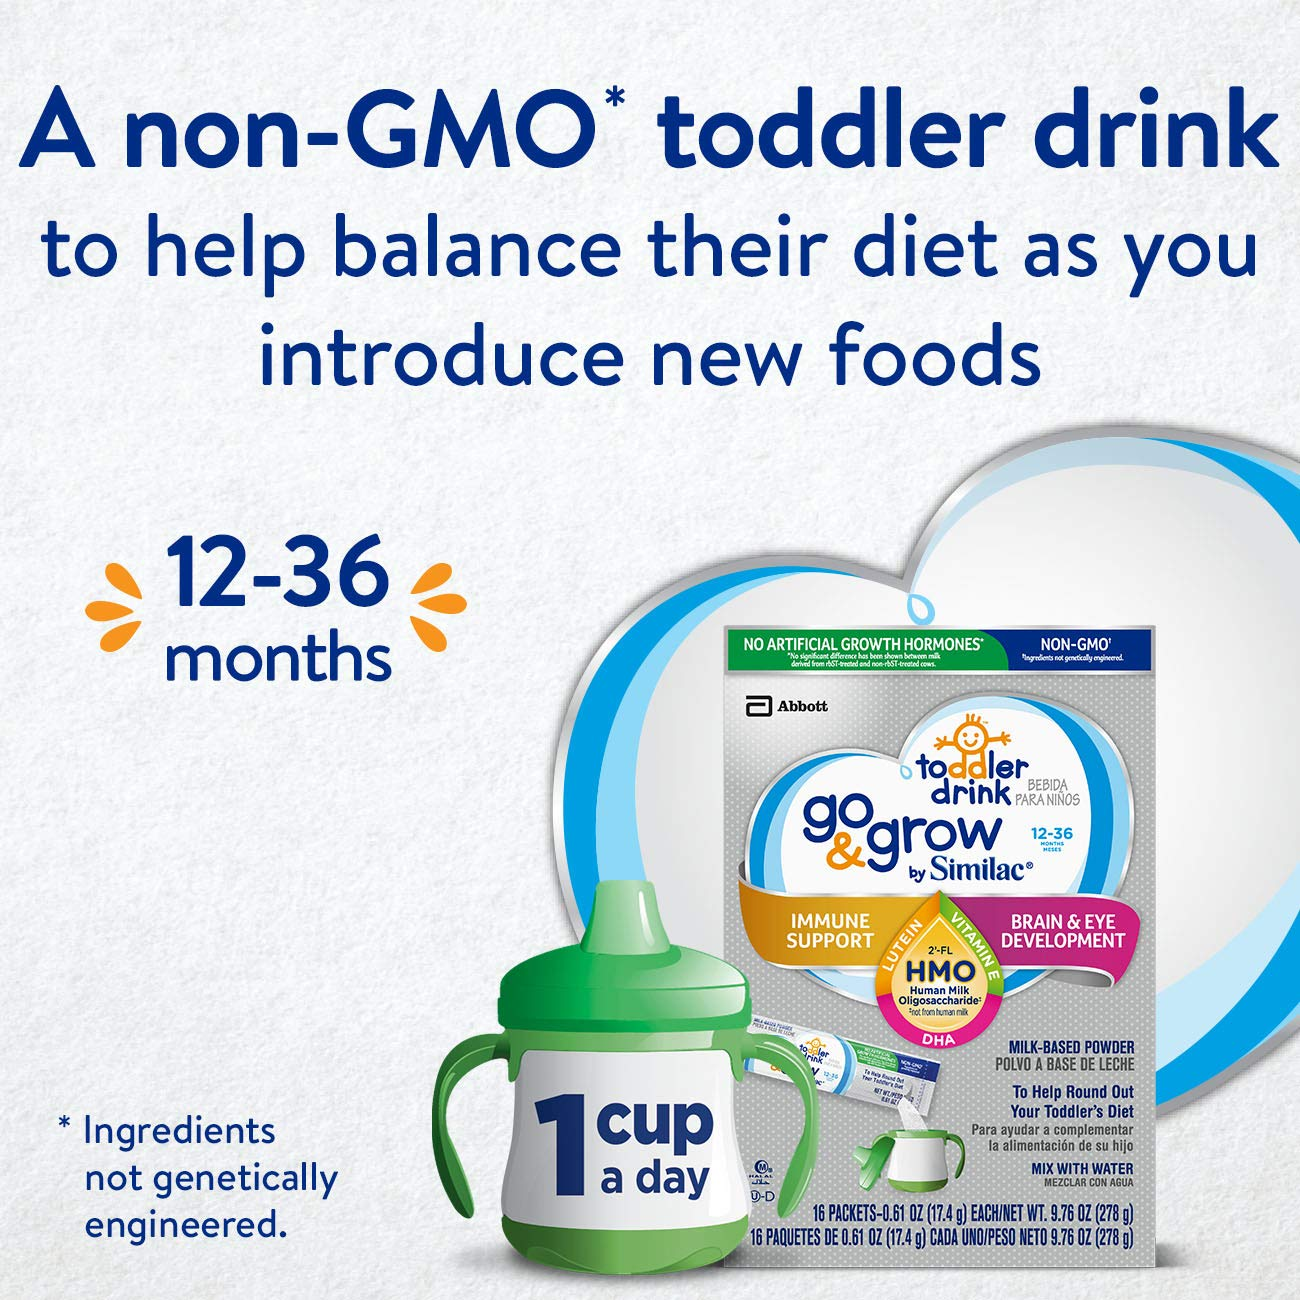 Go & Grow by Similac Non-GMO Toddler Milk-Based Drink with 2'-FL HMO for Immune Support, Powder Stick Packs, 17.4 g, 64 Count by Similac Go & Grow Milk (Image #3)